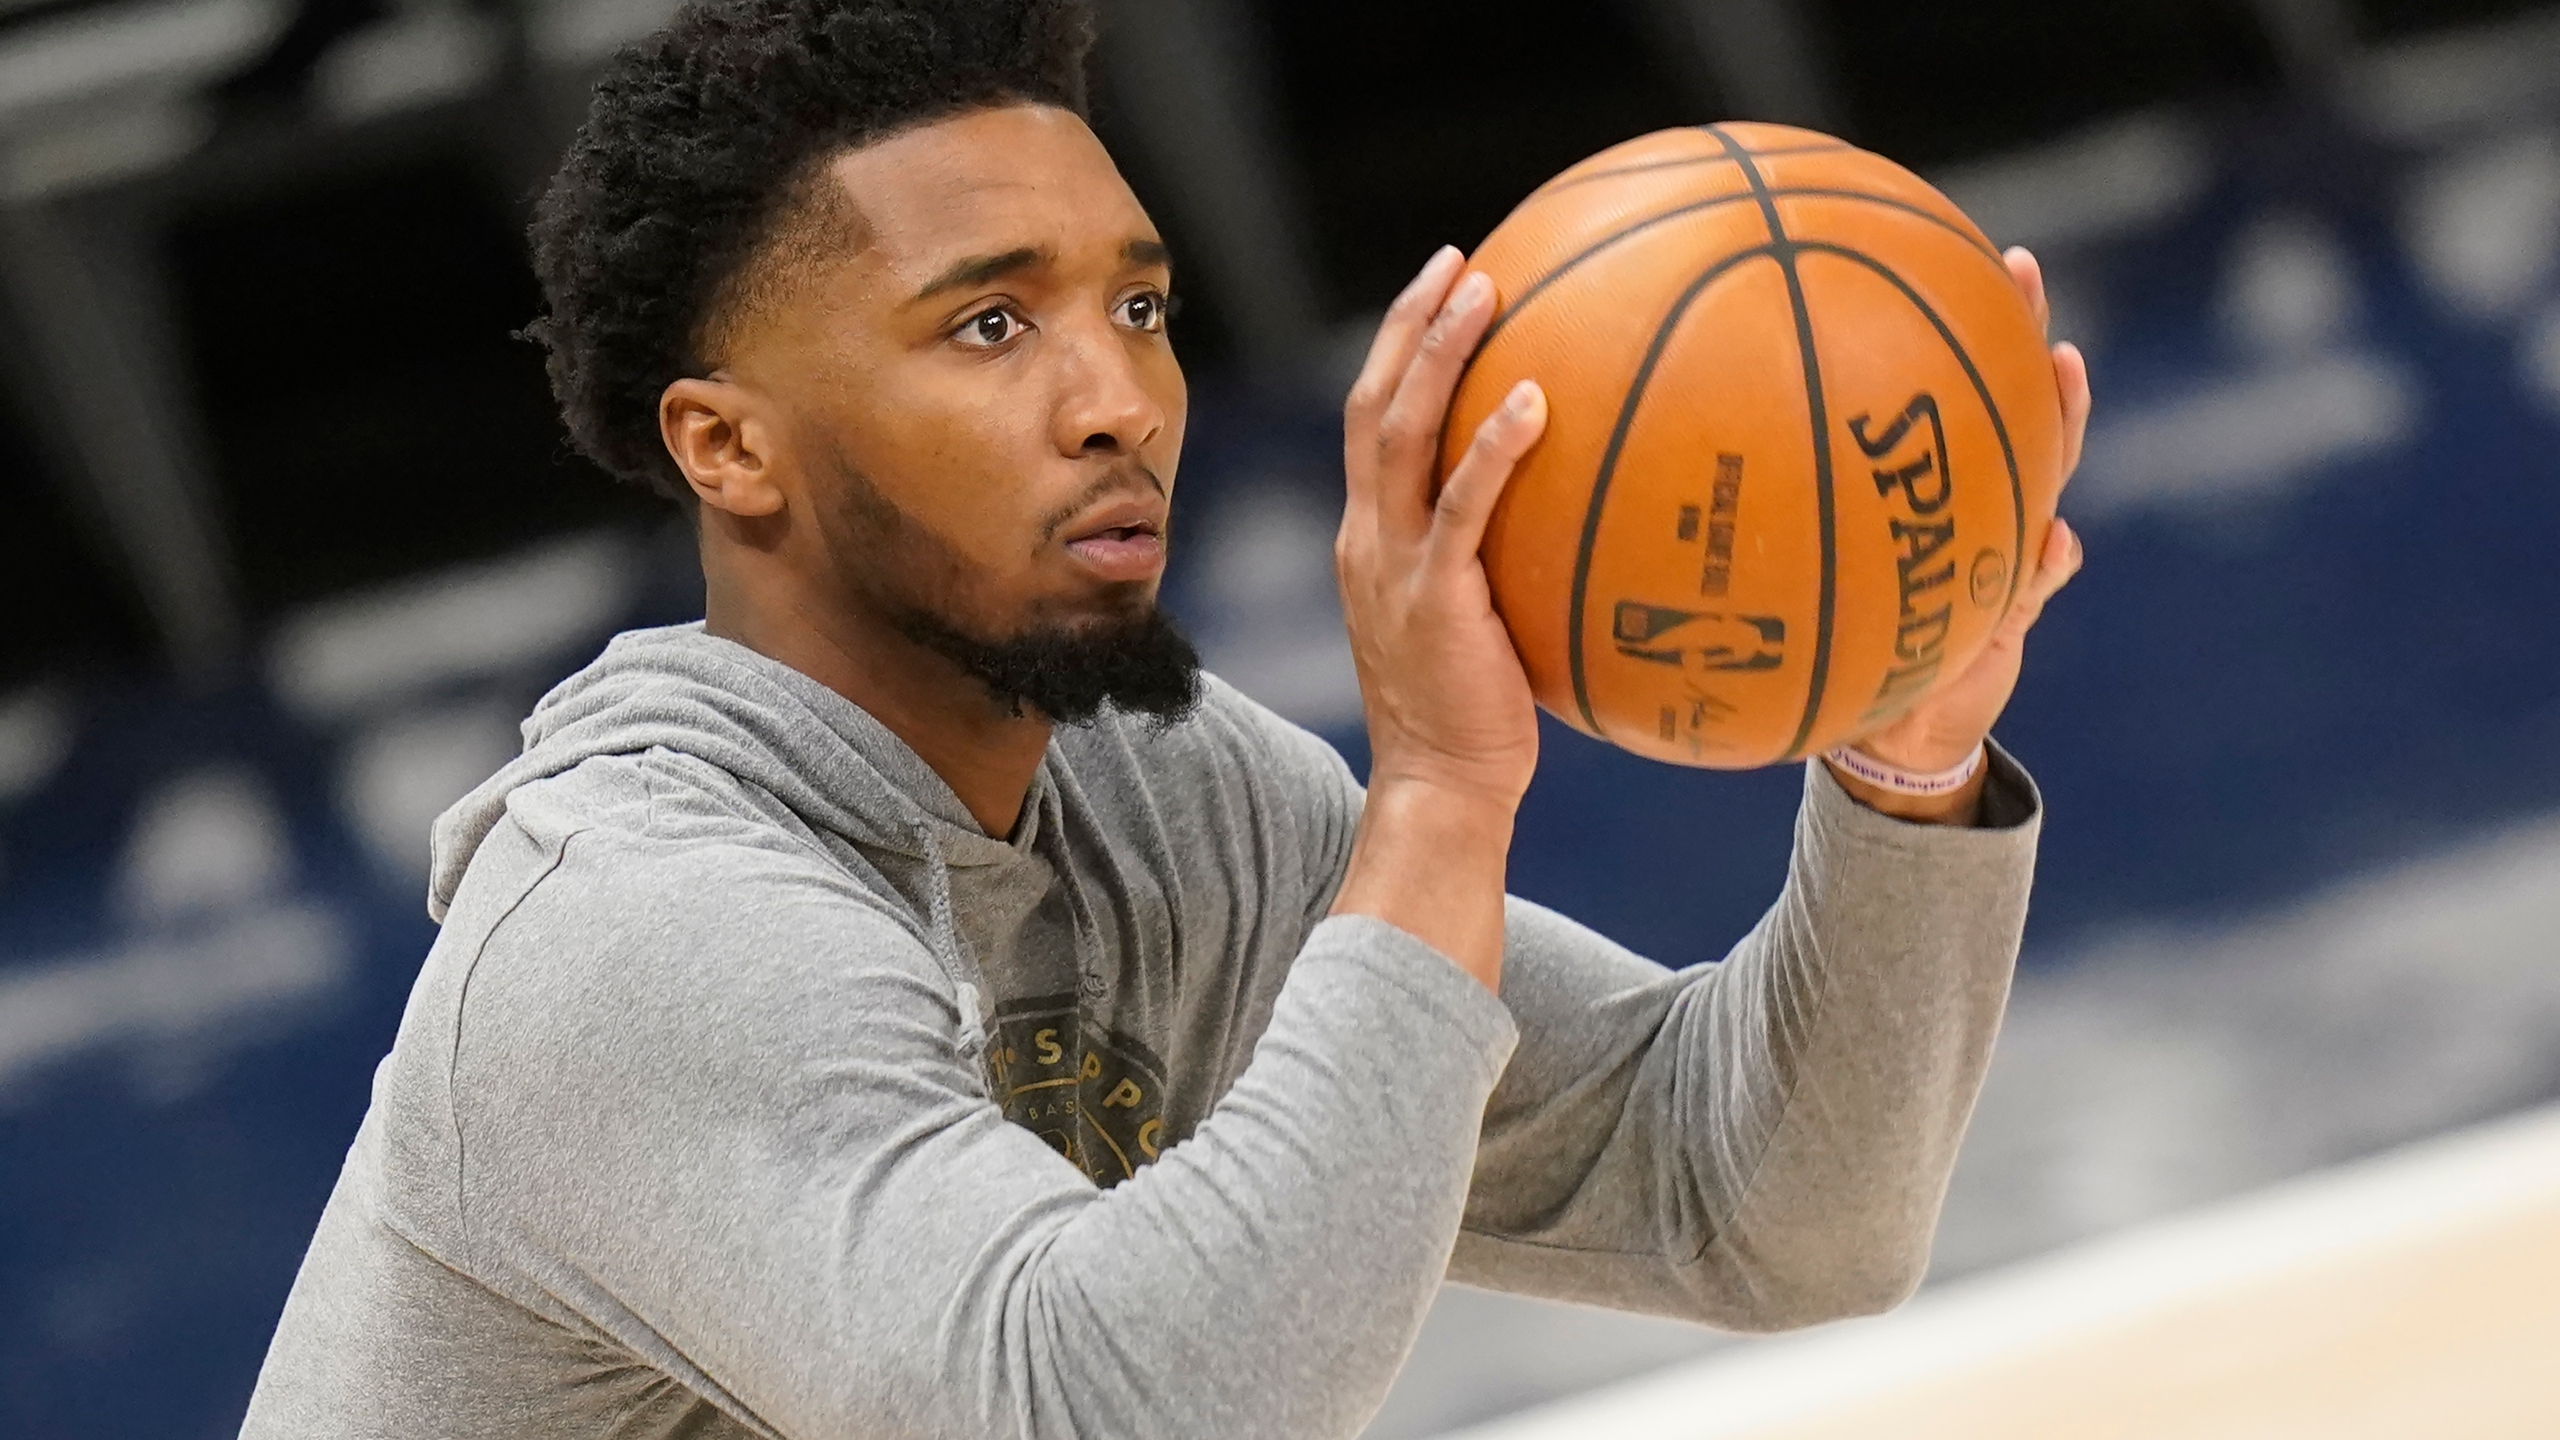 Donovan Mitchell expresses 'frustration' with Utah Jazz after sitting him  in Game 1 against Grizzlies